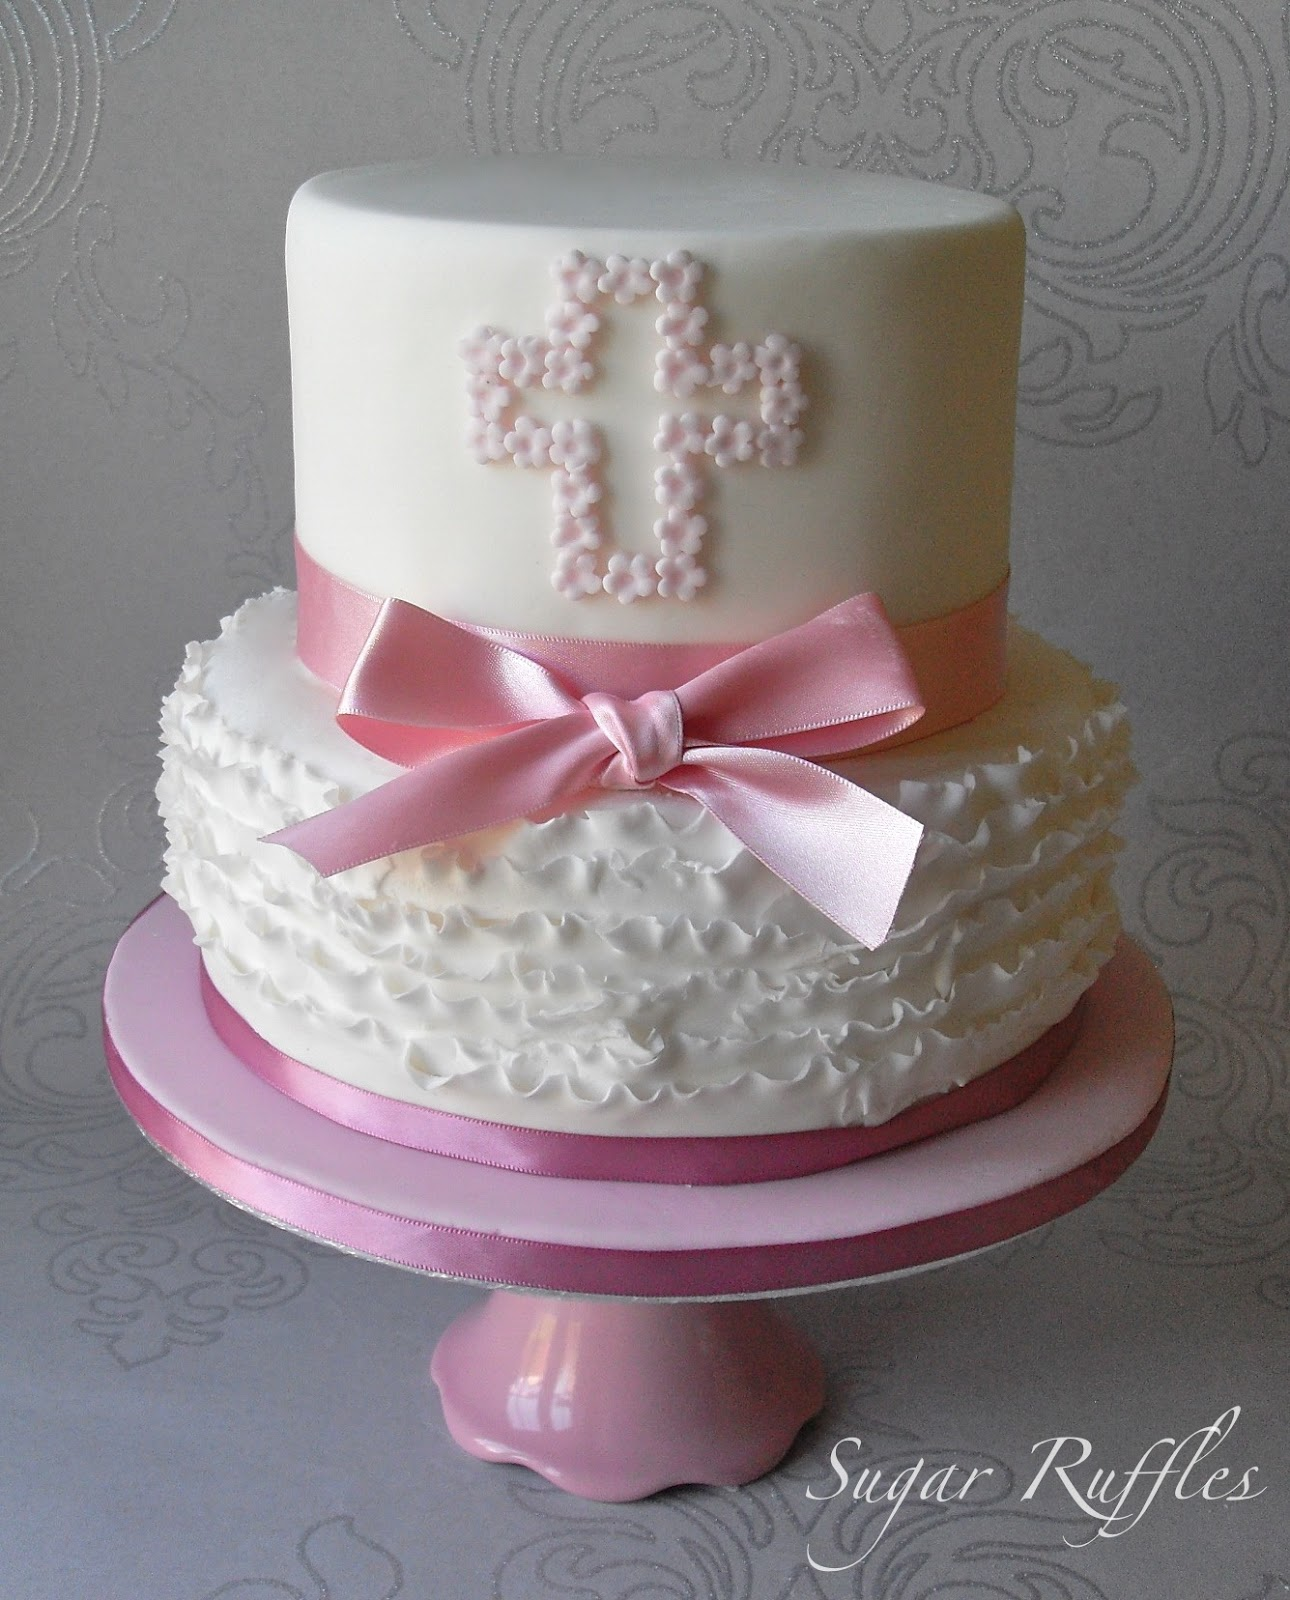 Images Of Cake For Christening : Sugar Ruffles, Elegant Wedding Cakes. Barrow in Furness ...